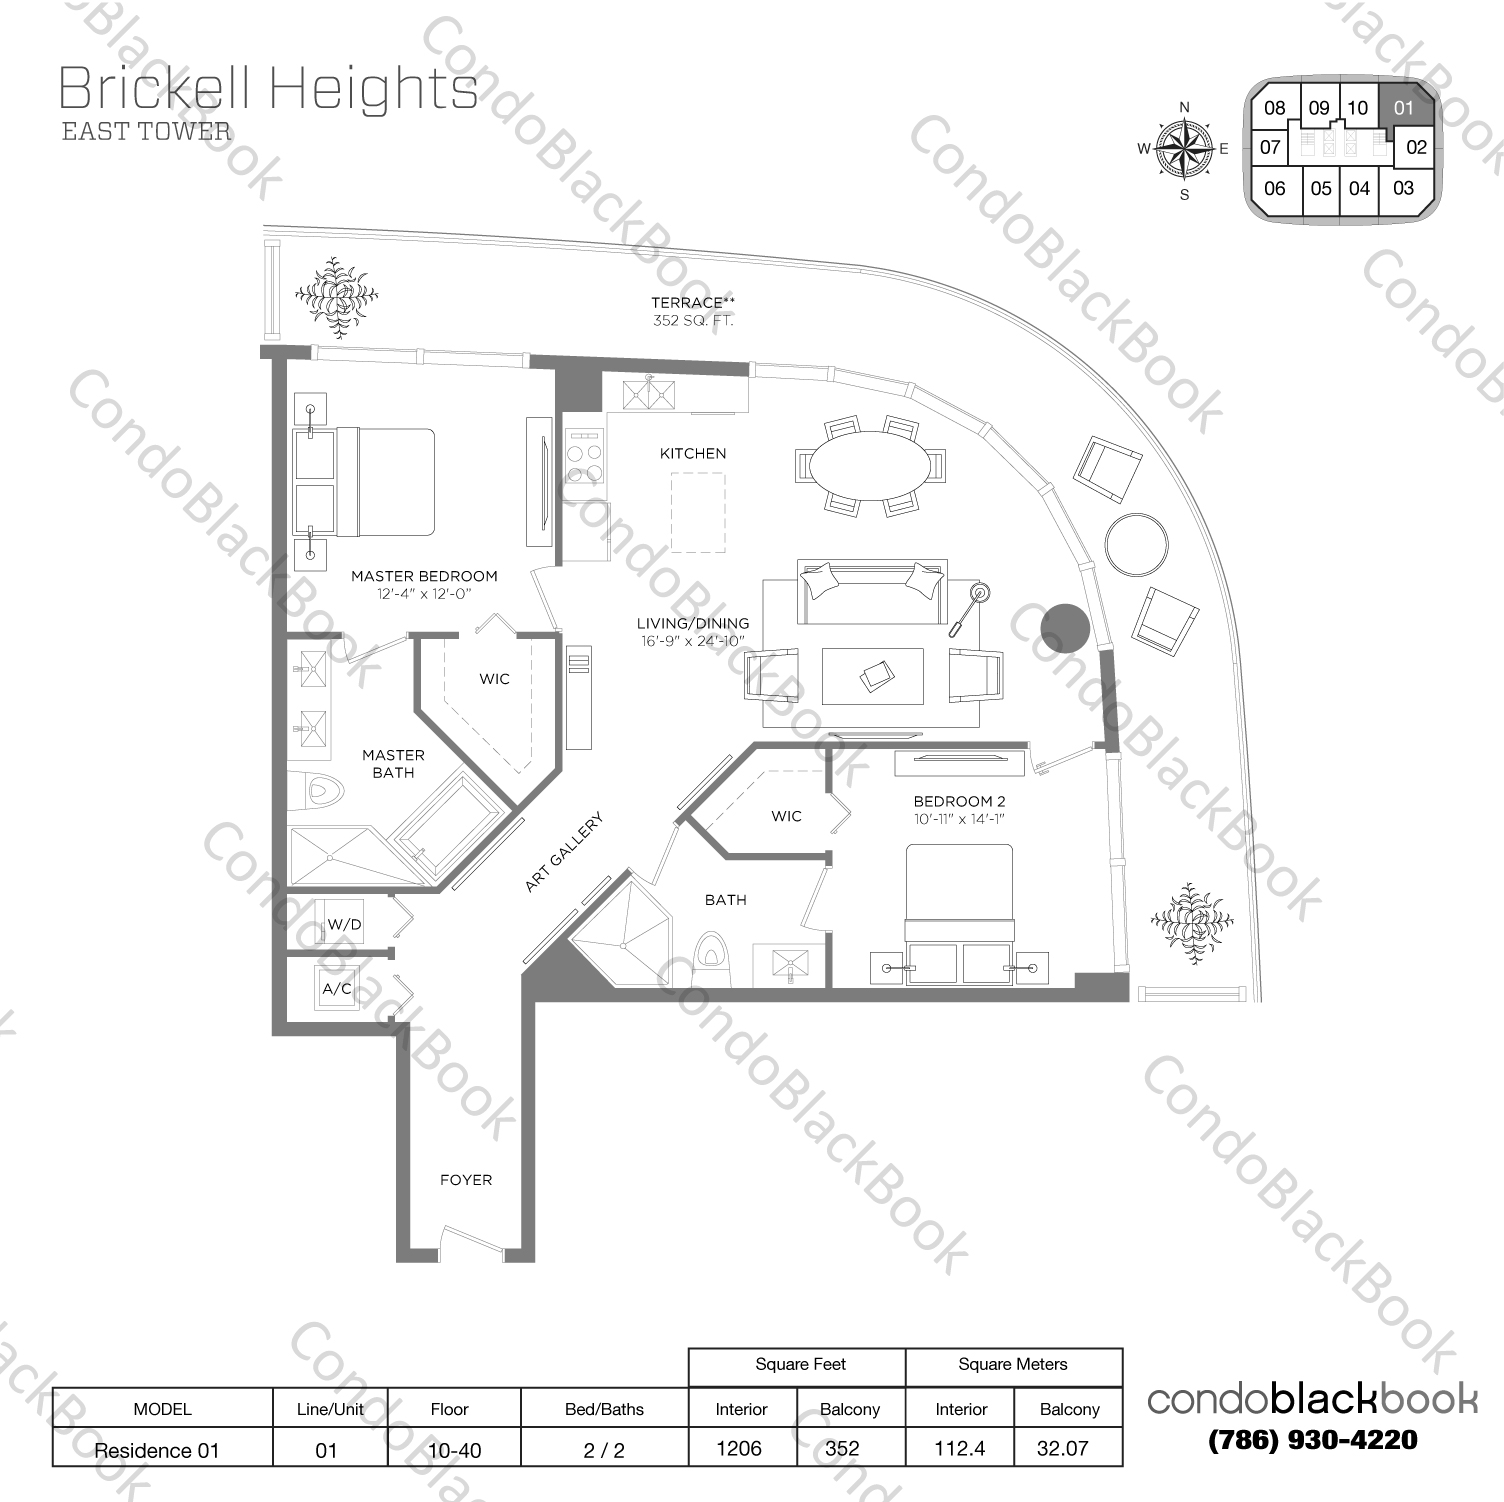 Floor plan for Brickell Heights East Tower Brickell Miami, model Residence 01, line 01, 2/2 bedrooms, 1,206 sq ft